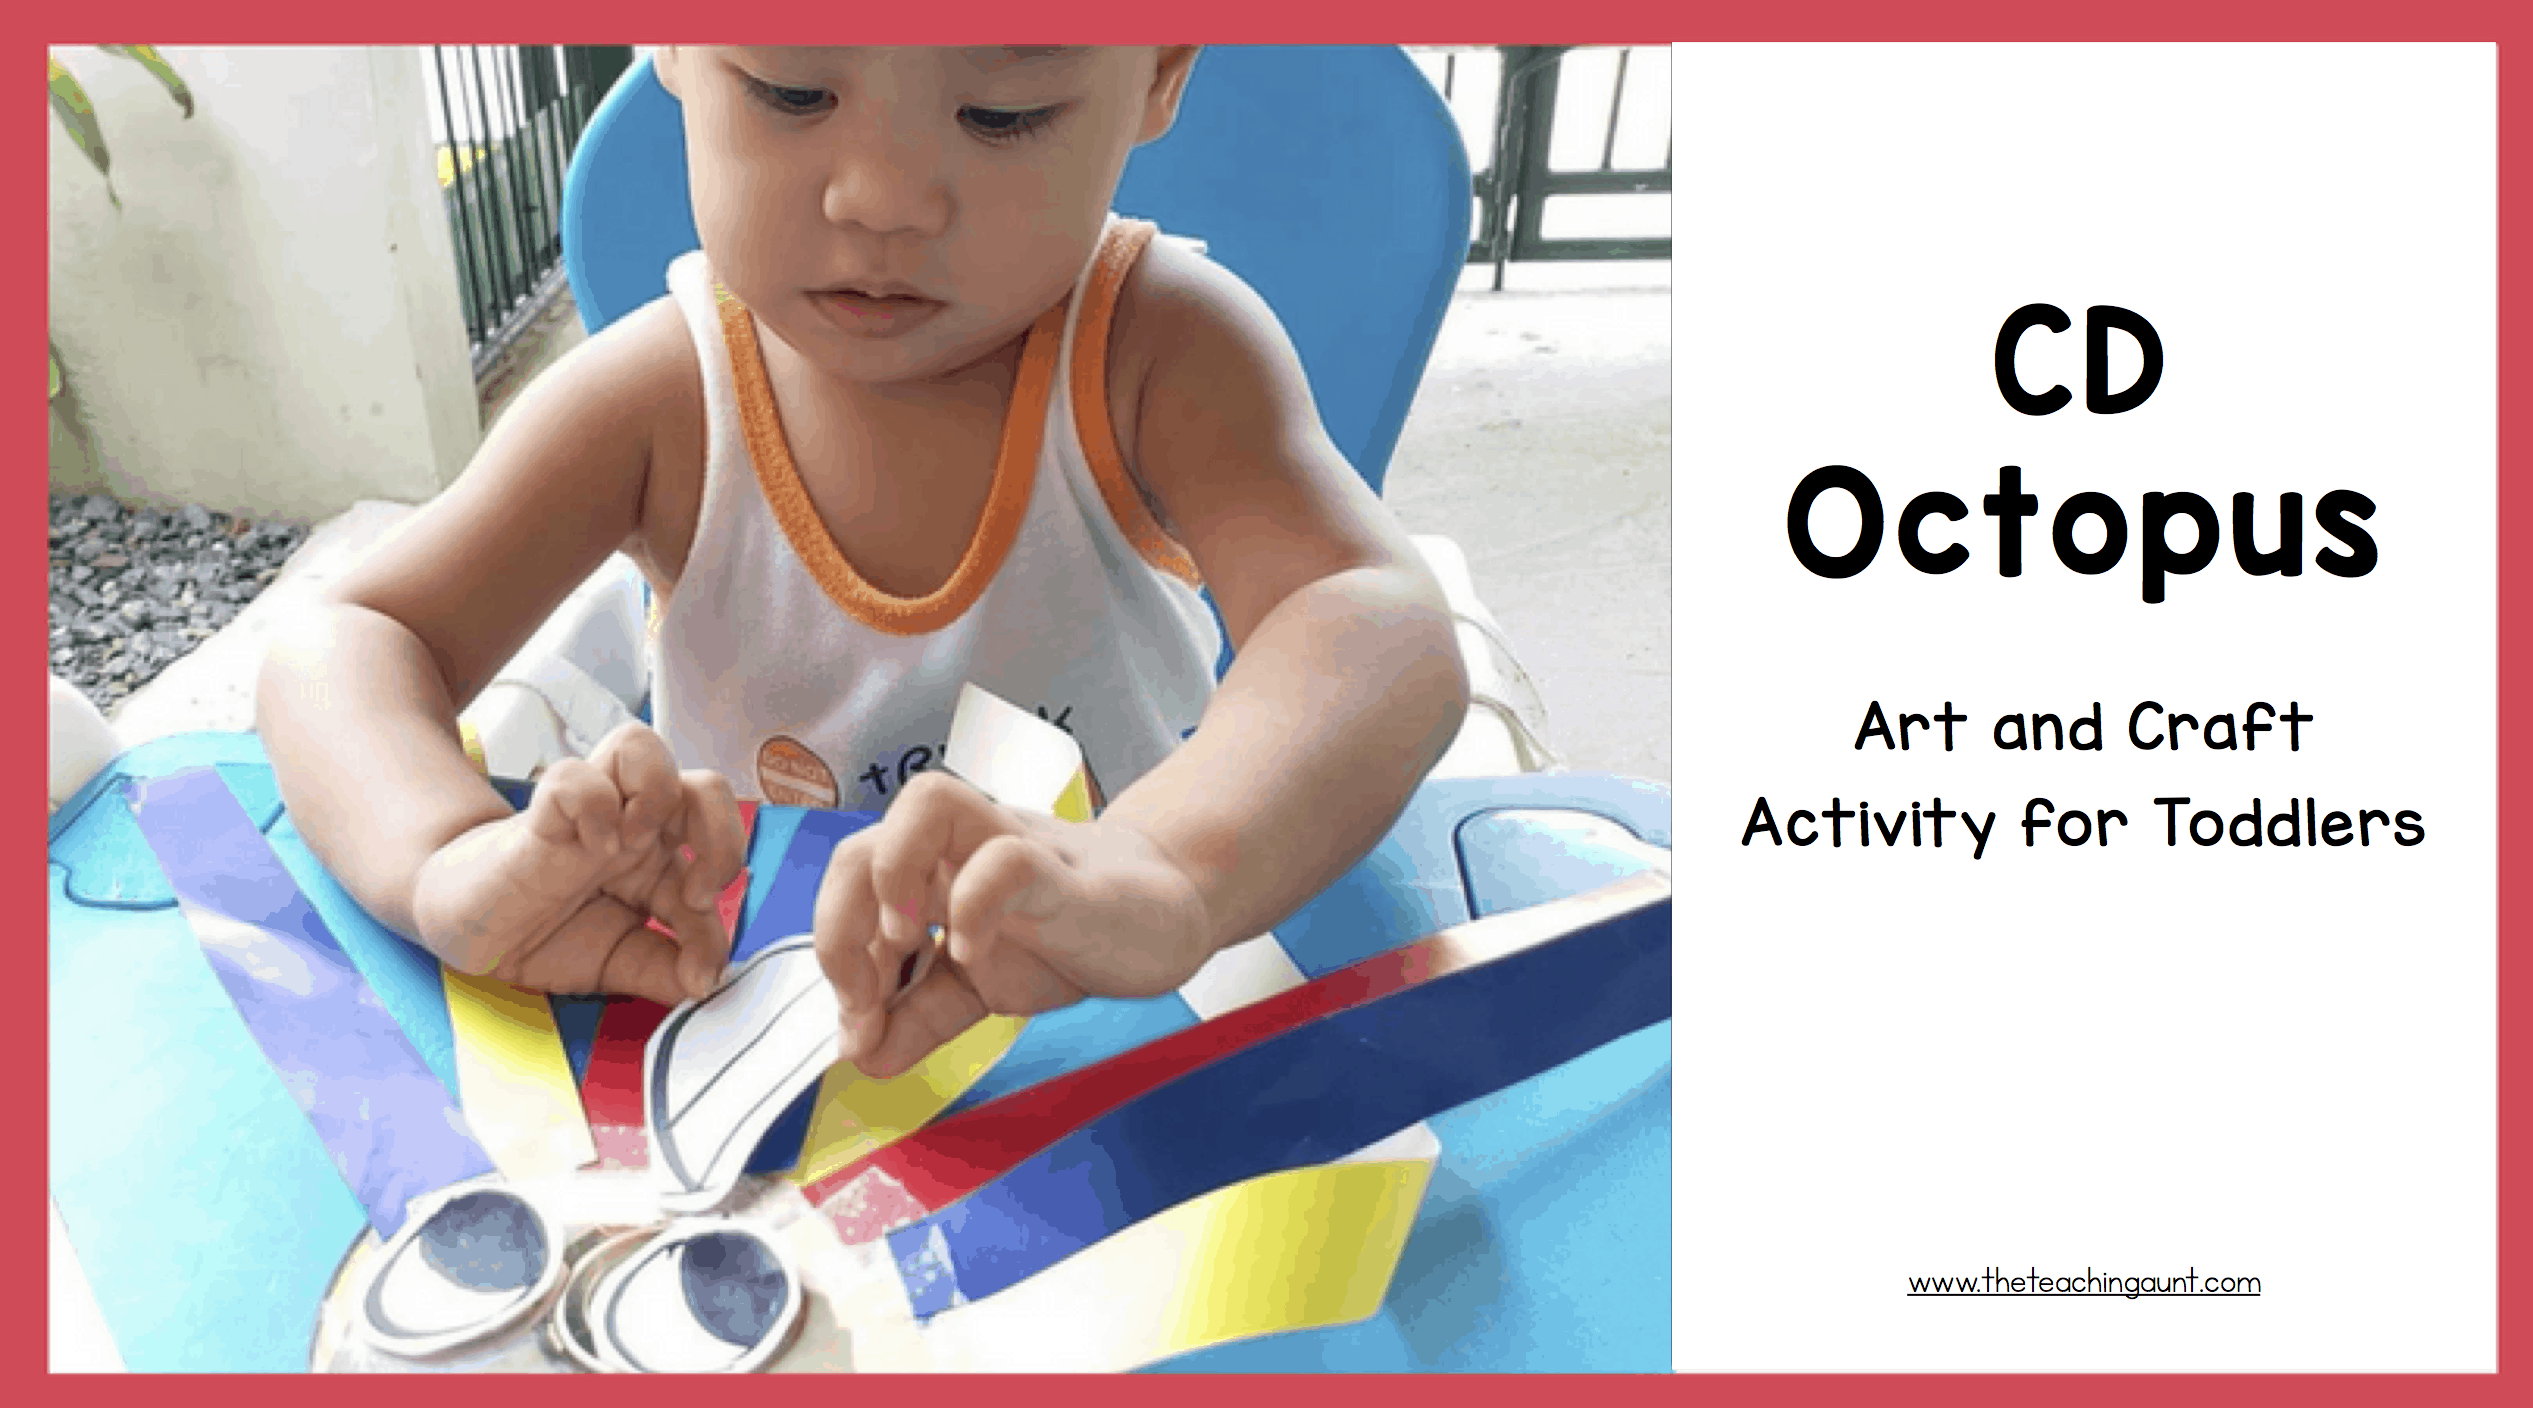 CD Octopus Art and Craft Activity for Toddlers